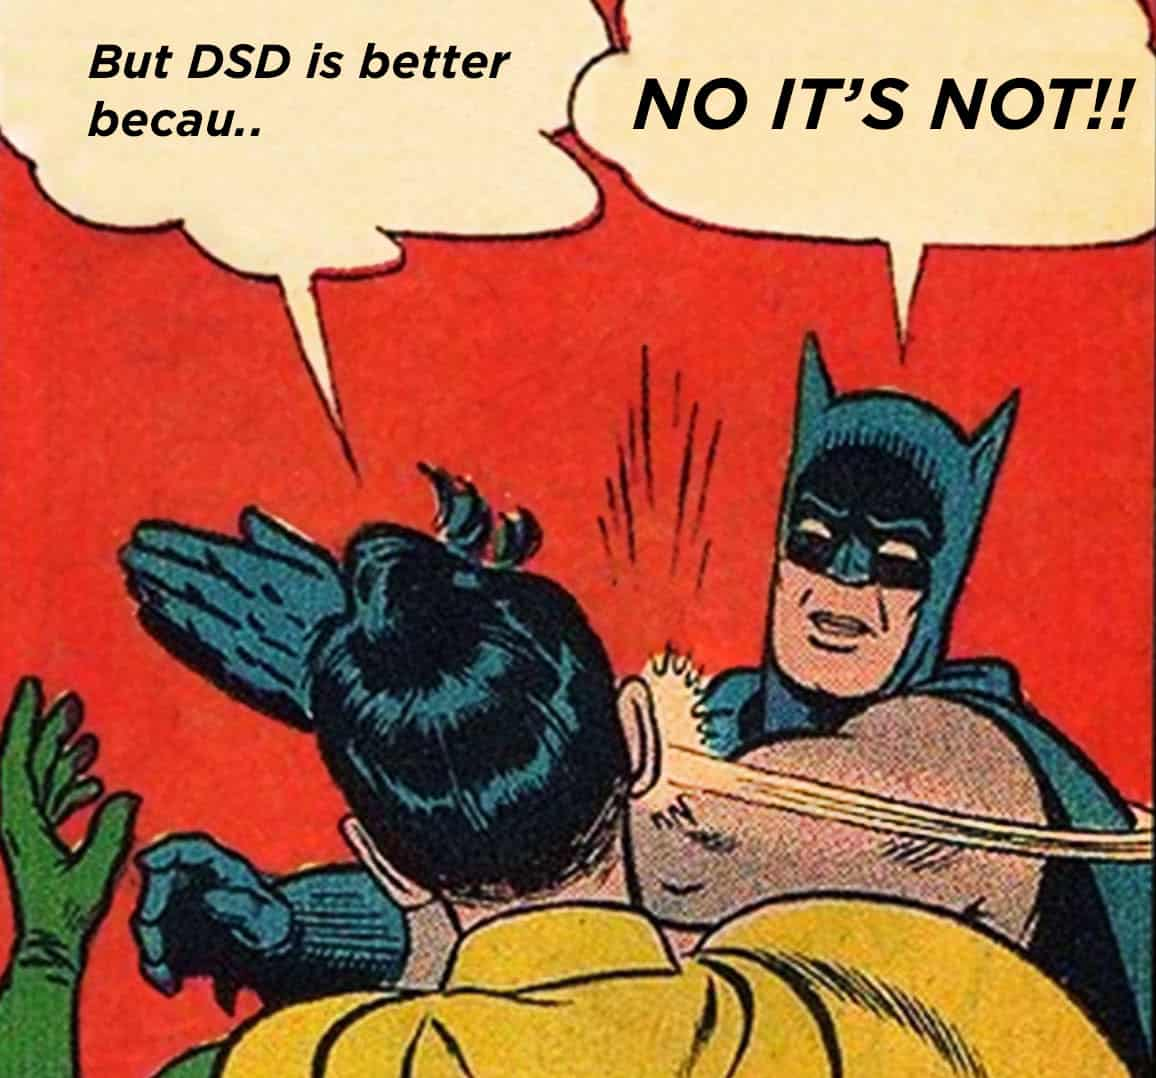 What is DSD?